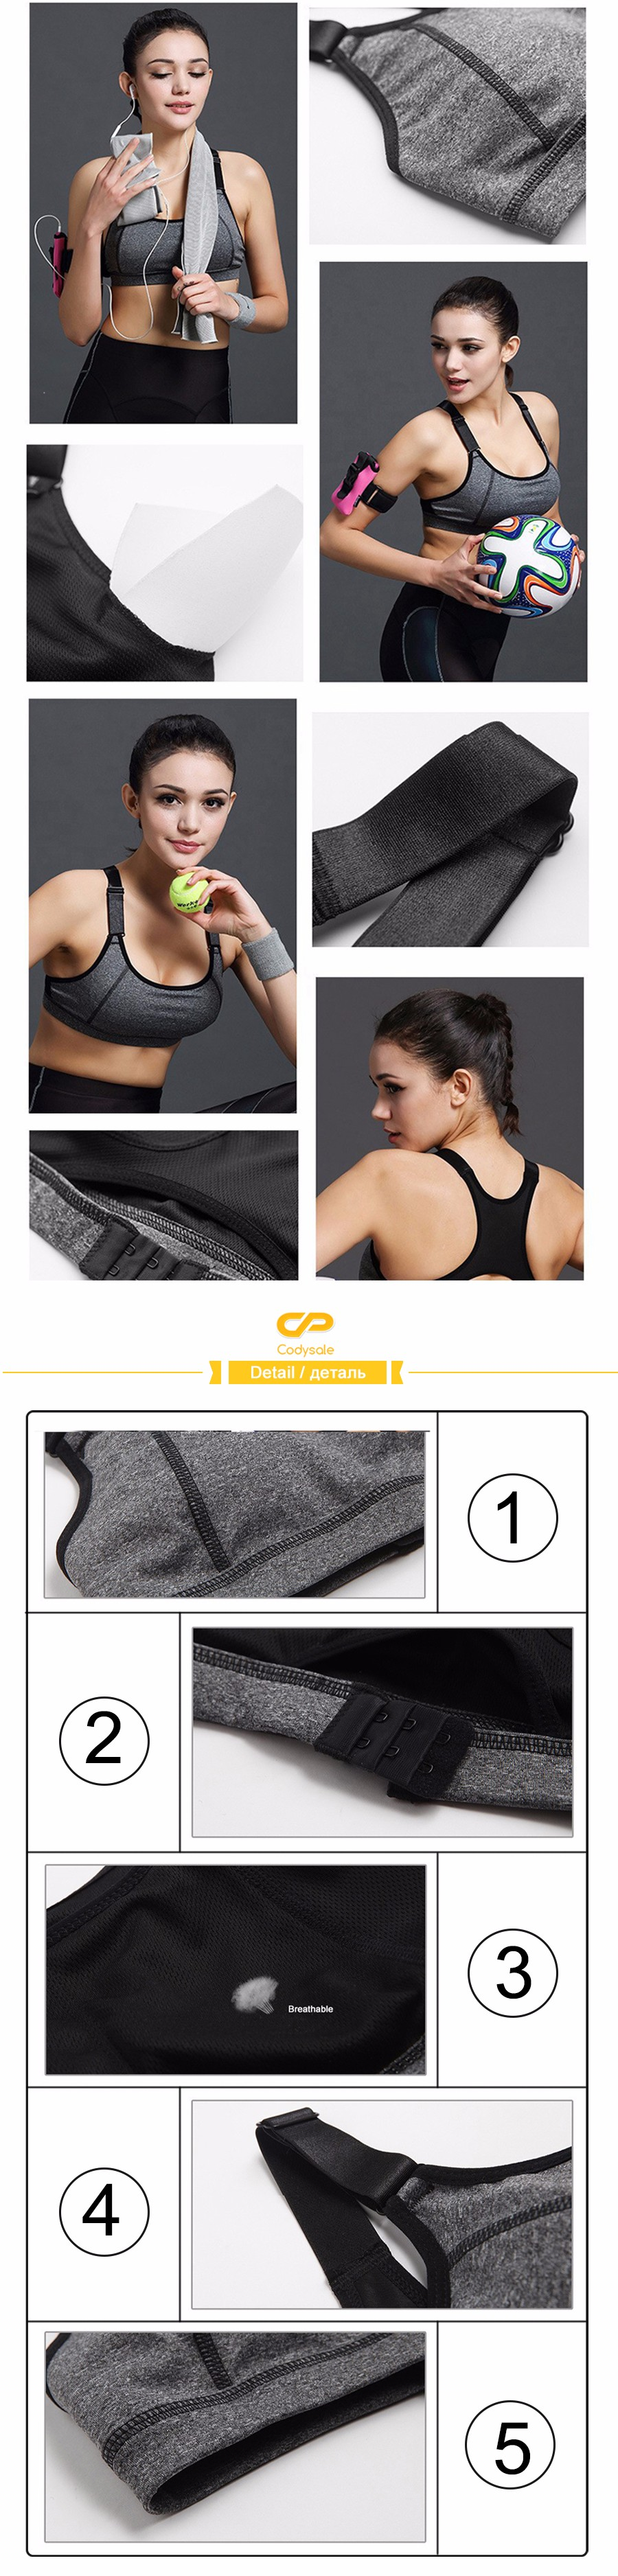 Codysale Sexy Bras Women Fitness Shakeproof Seamless Push Up Padded Bras Workout Quick-Dry Plus Size Underwear Sleeveless Tops 6